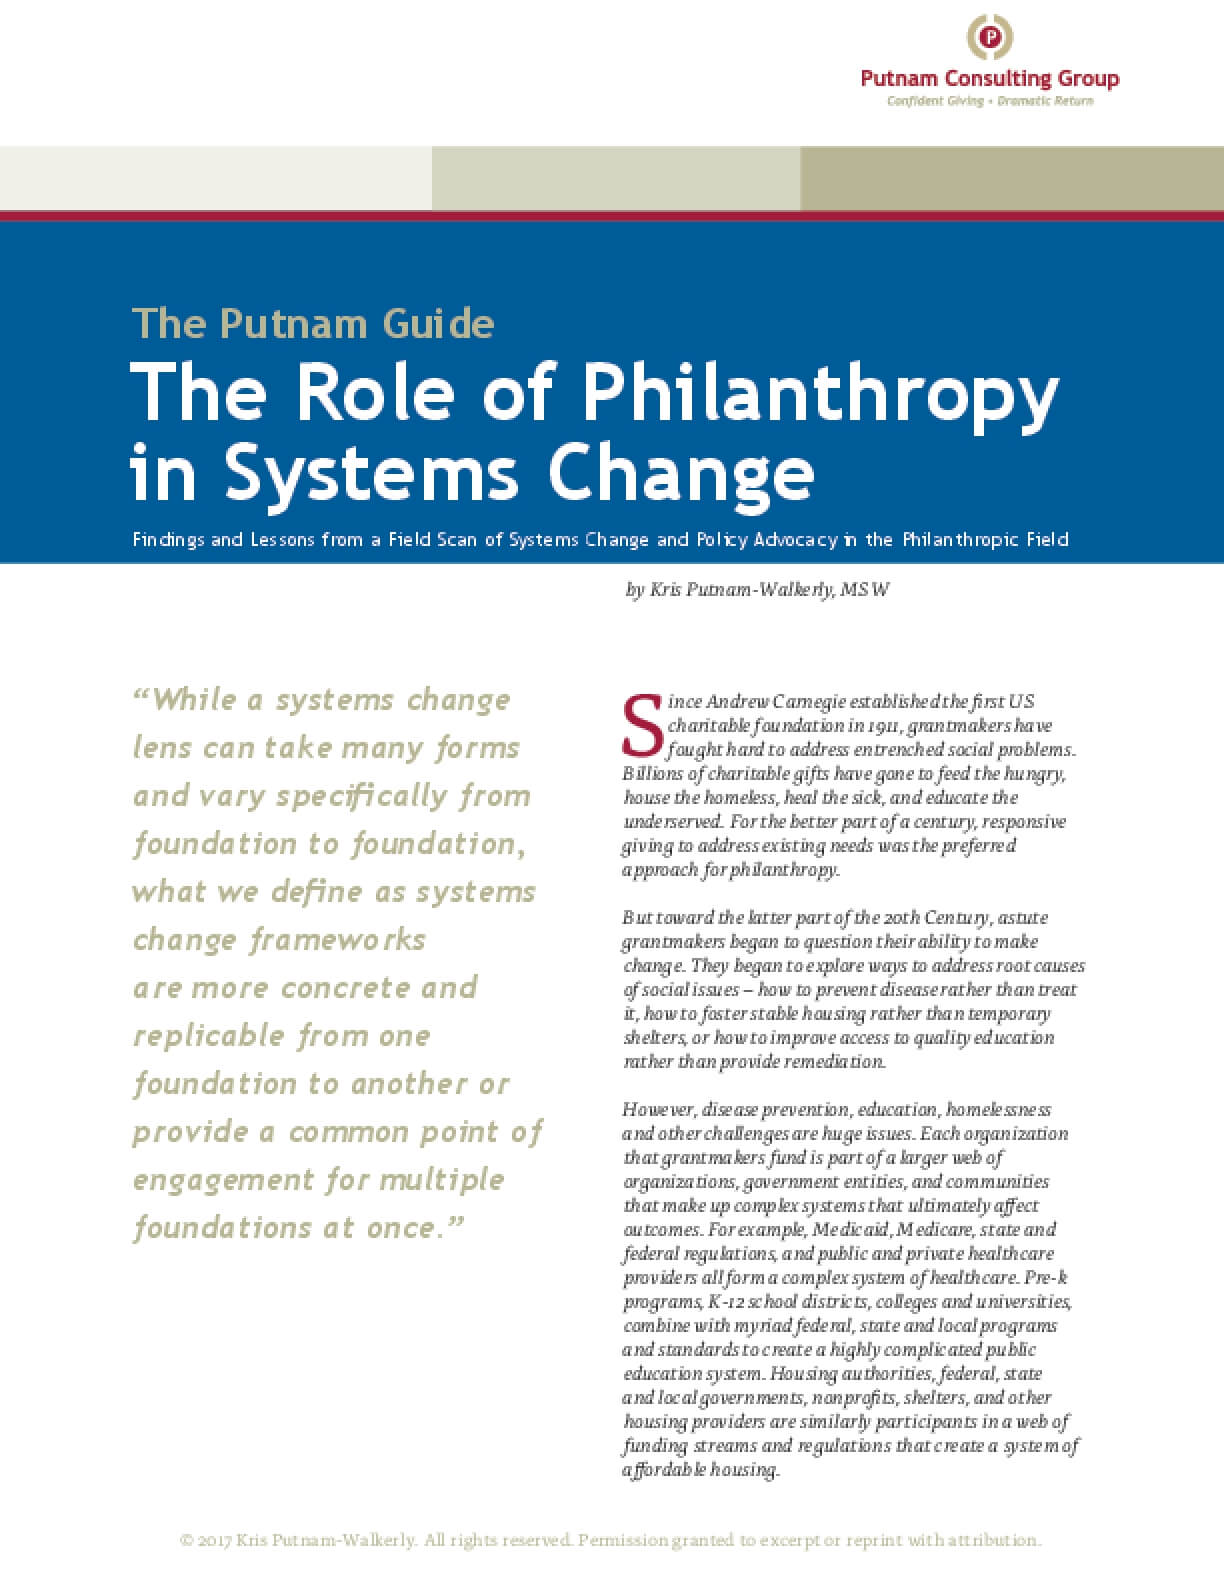 The Role of Philanthropy in Systems Change